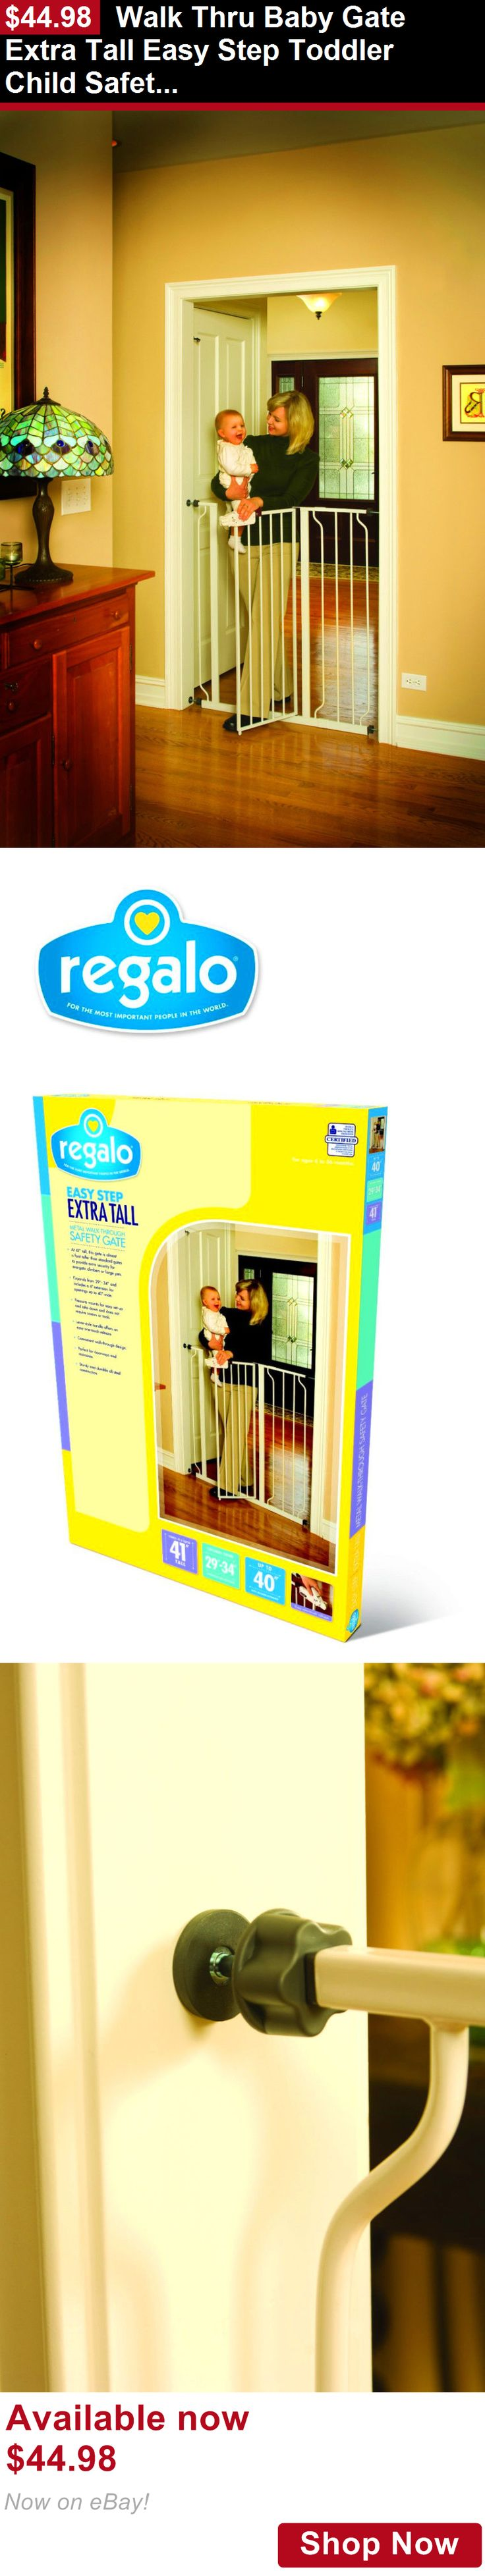 Baby Safety Gates: Walk Thru Baby Gate Extra Tall Easy Step Toddler Child Safety Pressure Mounting BUY IT NOW ONLY: $44.98